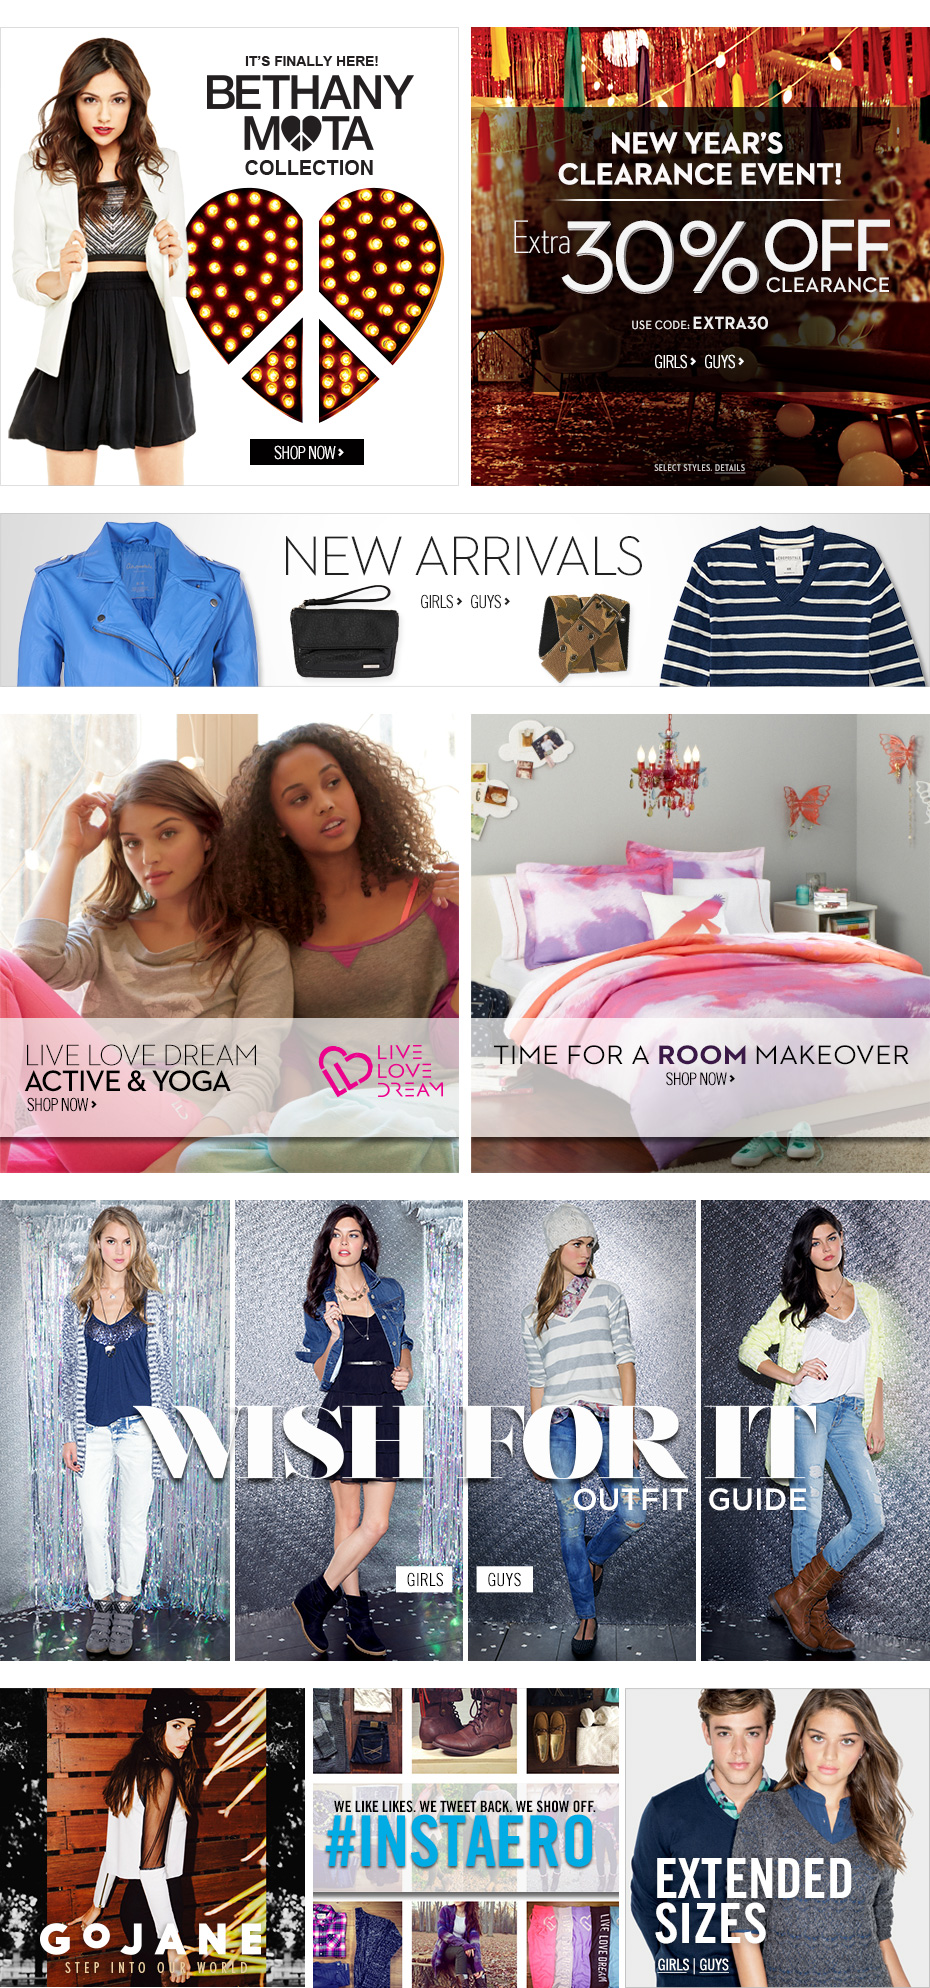 Guys & Girls Clothes, Hoodies, Graphic Tees & Jeans   Aeropostale